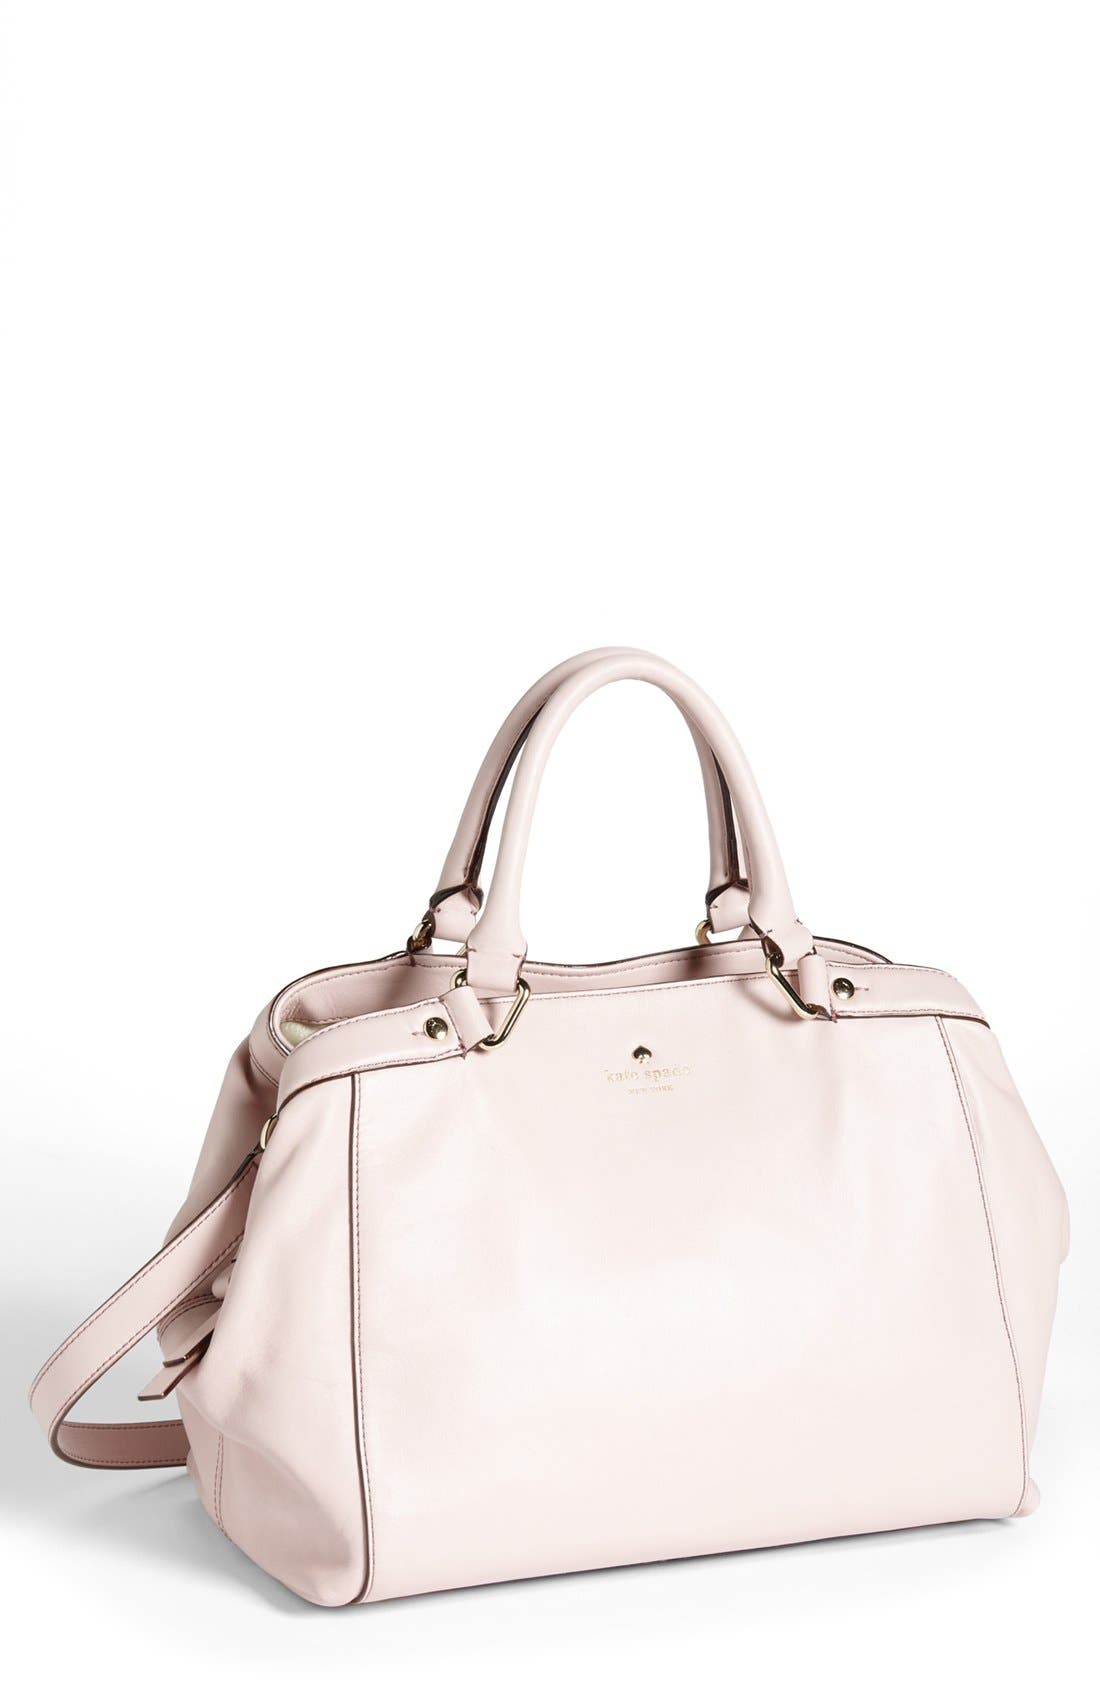 Alternate Image 1 Selected - kate spade new york 'hamilton heights - sloan' satchel